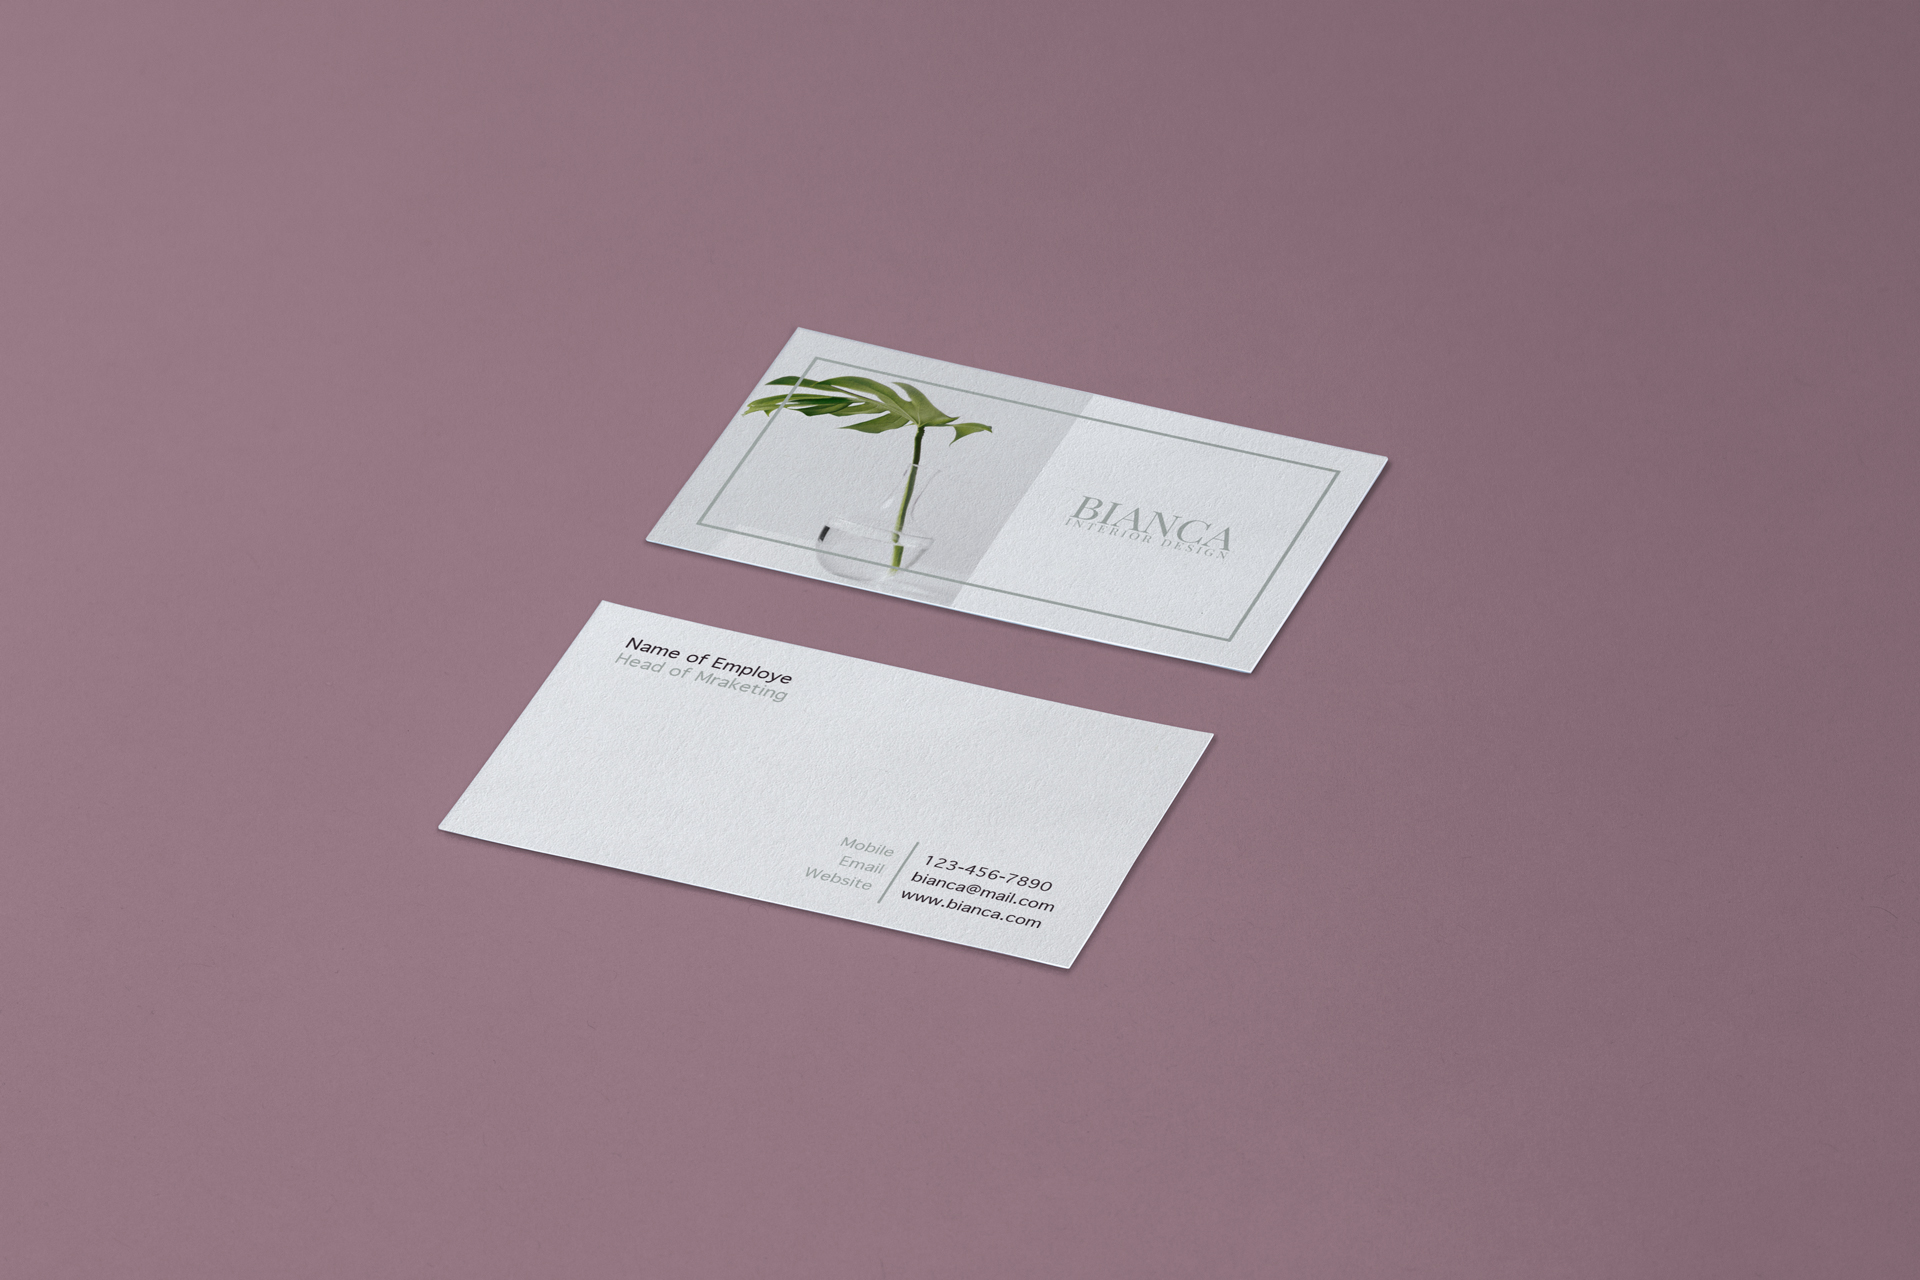 Free business card design for interior designer